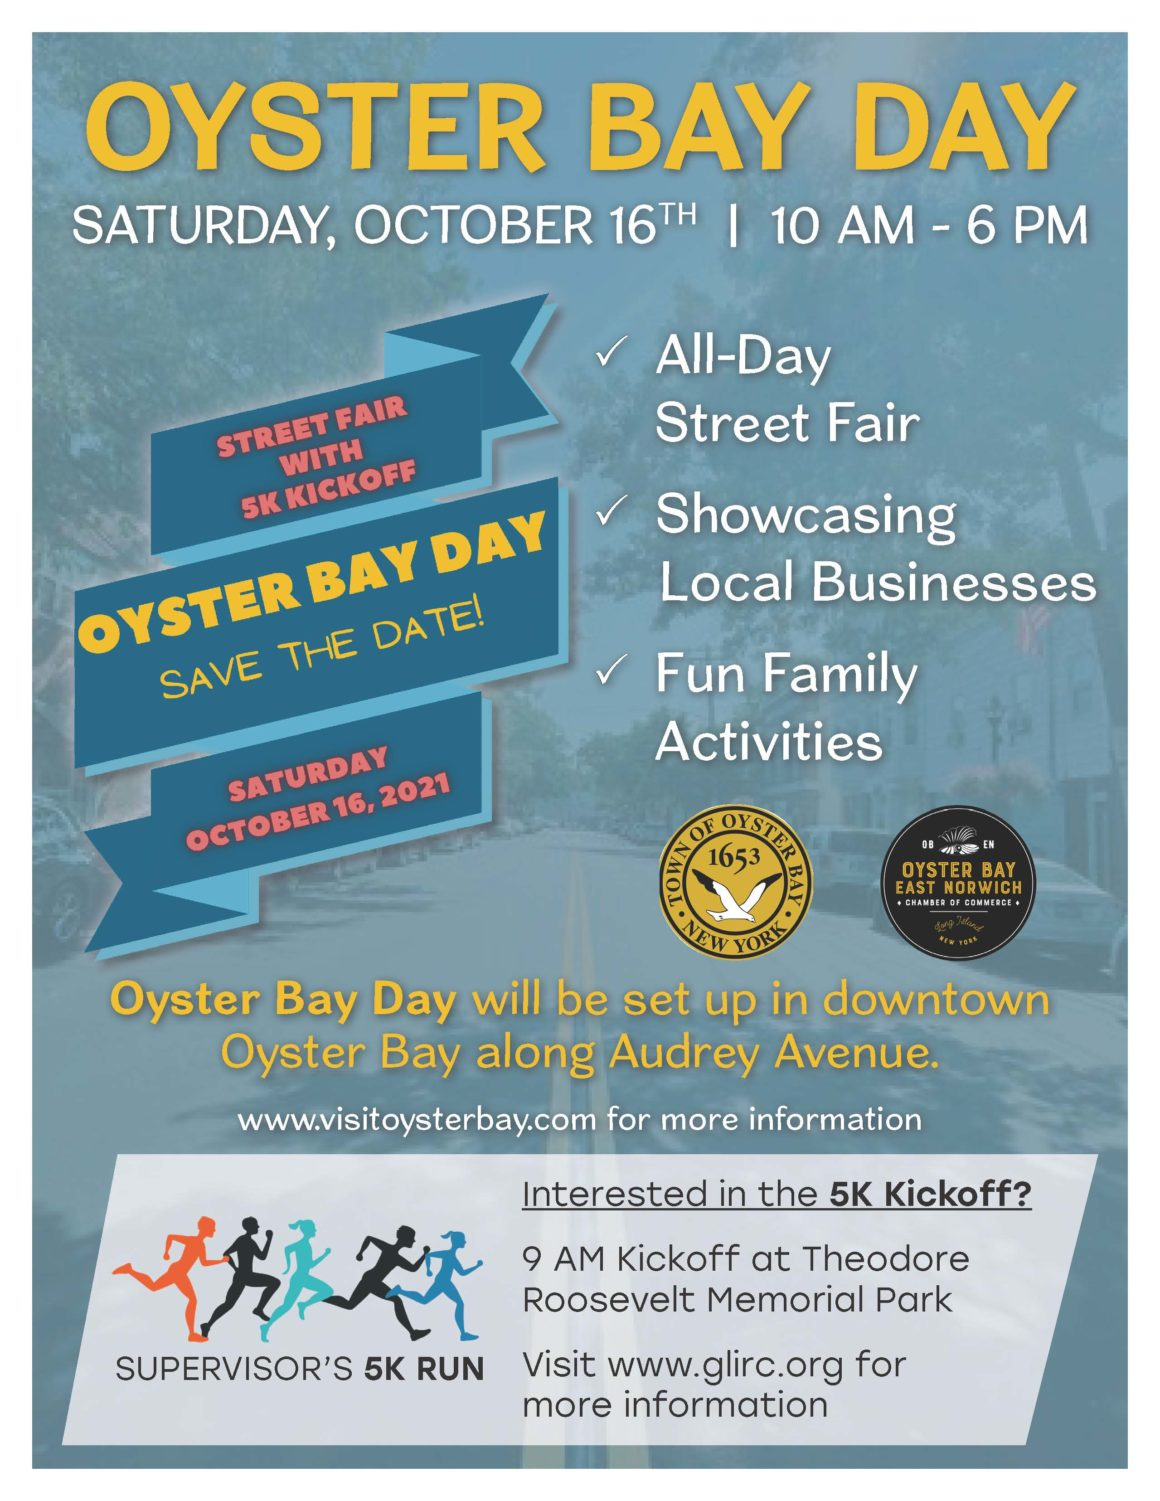 Saladino and LaMarca Invite Residents to 'Oyster Bay Day' Saturday, October 16th